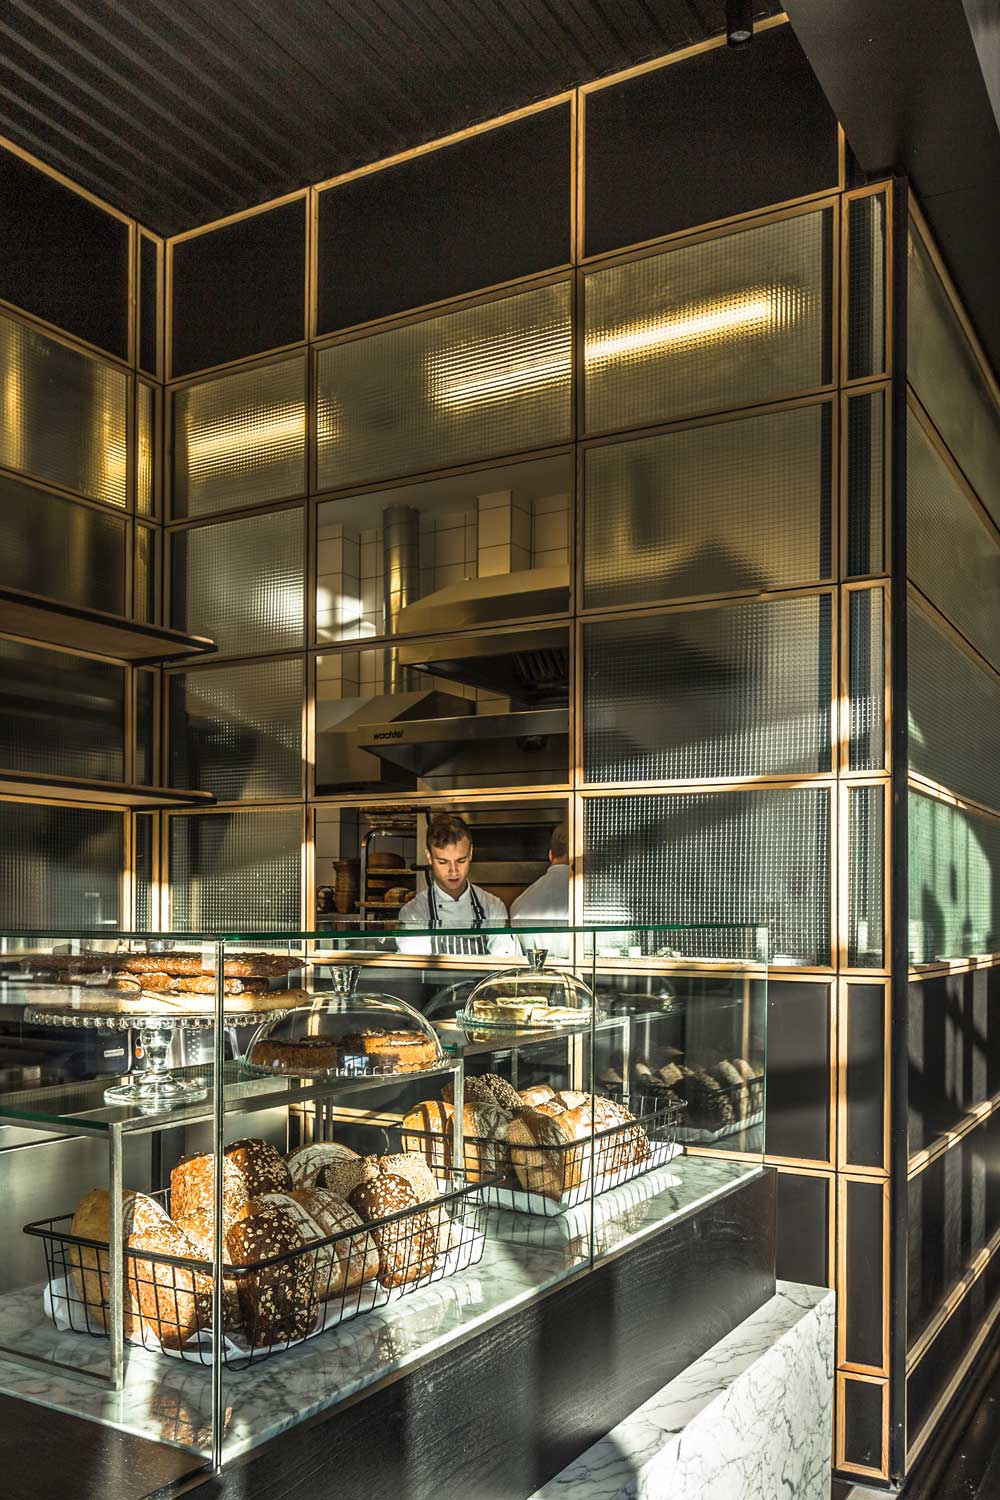 Di Caf 233 Deli Poland By Buck Studio Yellowtrace